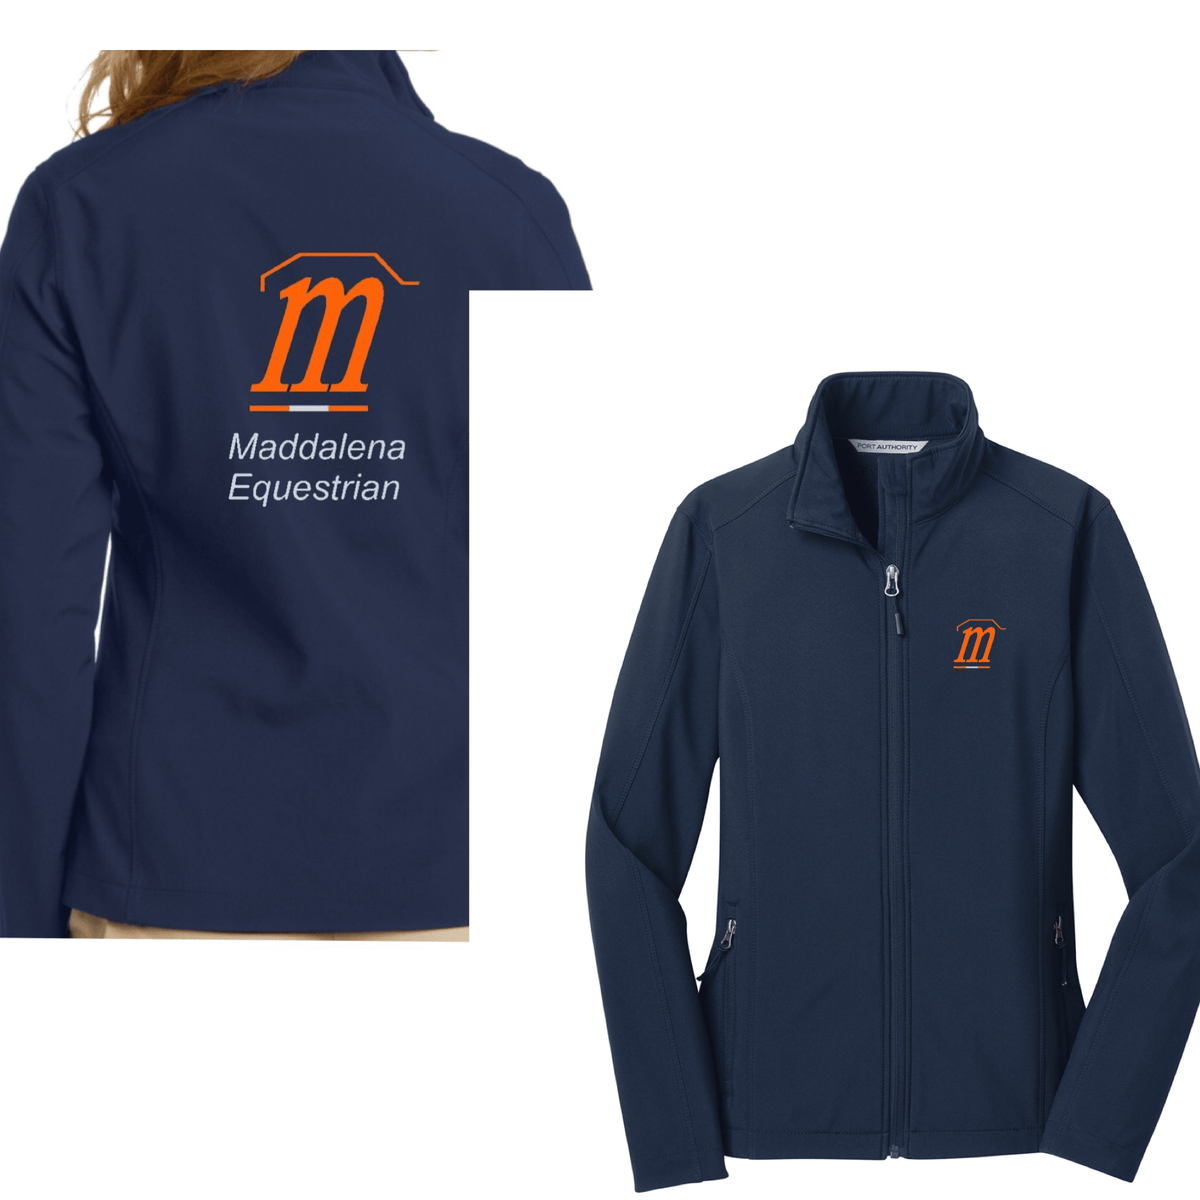 Equestrian Team Apparel Custom Team Jackets Ladies / XSmall Maddalena Rain Coat equestrian team apparel online tack store mobile tack store custom farm apparel custom show stable clothing equestrian lifestyle horse show clothing riding clothes horses equestrian tack store